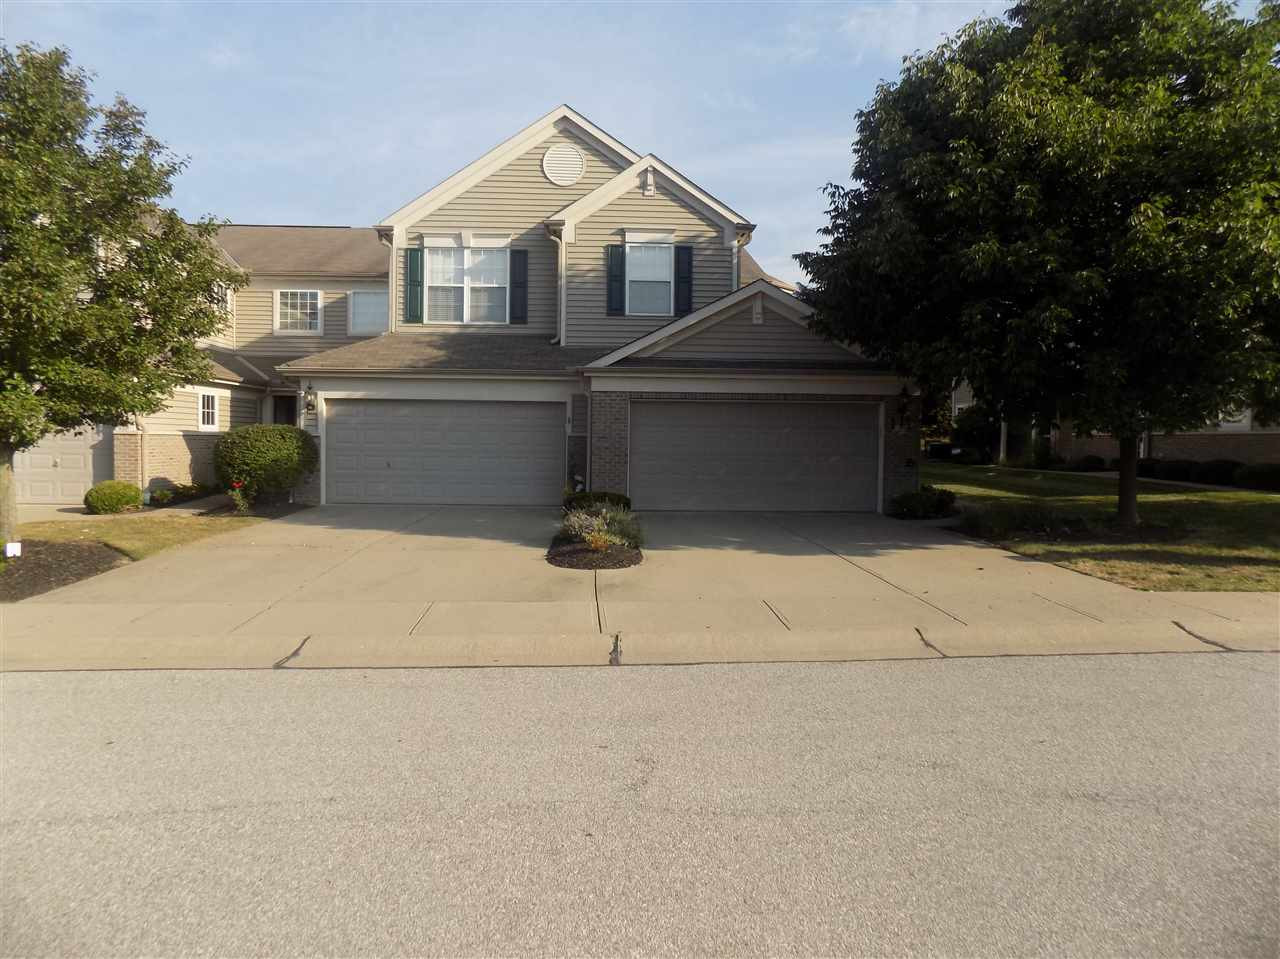 Photo 2 for 862 Flint Ridge Cold Spring, KY 41076